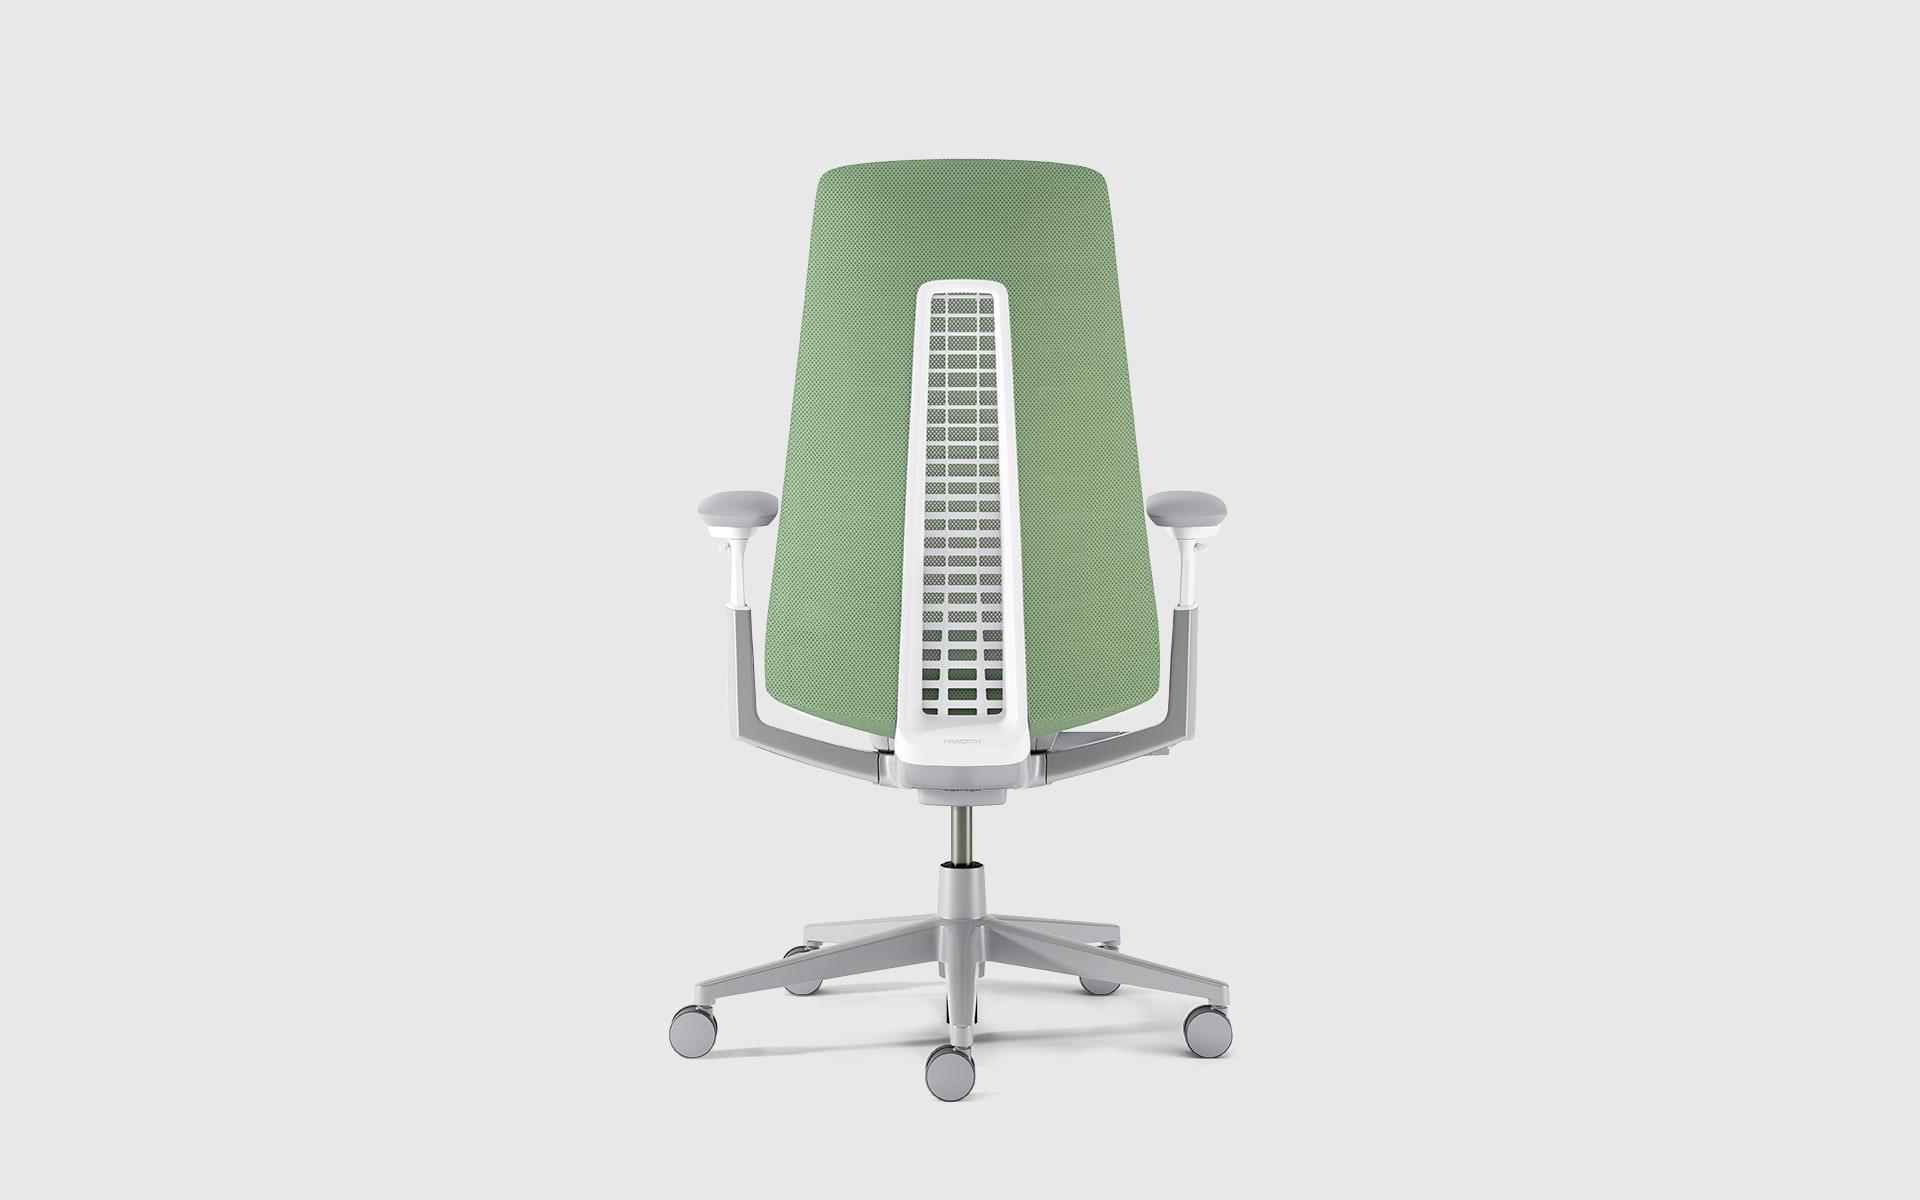 Haworth Fern office chair by ITO Design with green backrest whose functionality is inspired by the structure of a fern